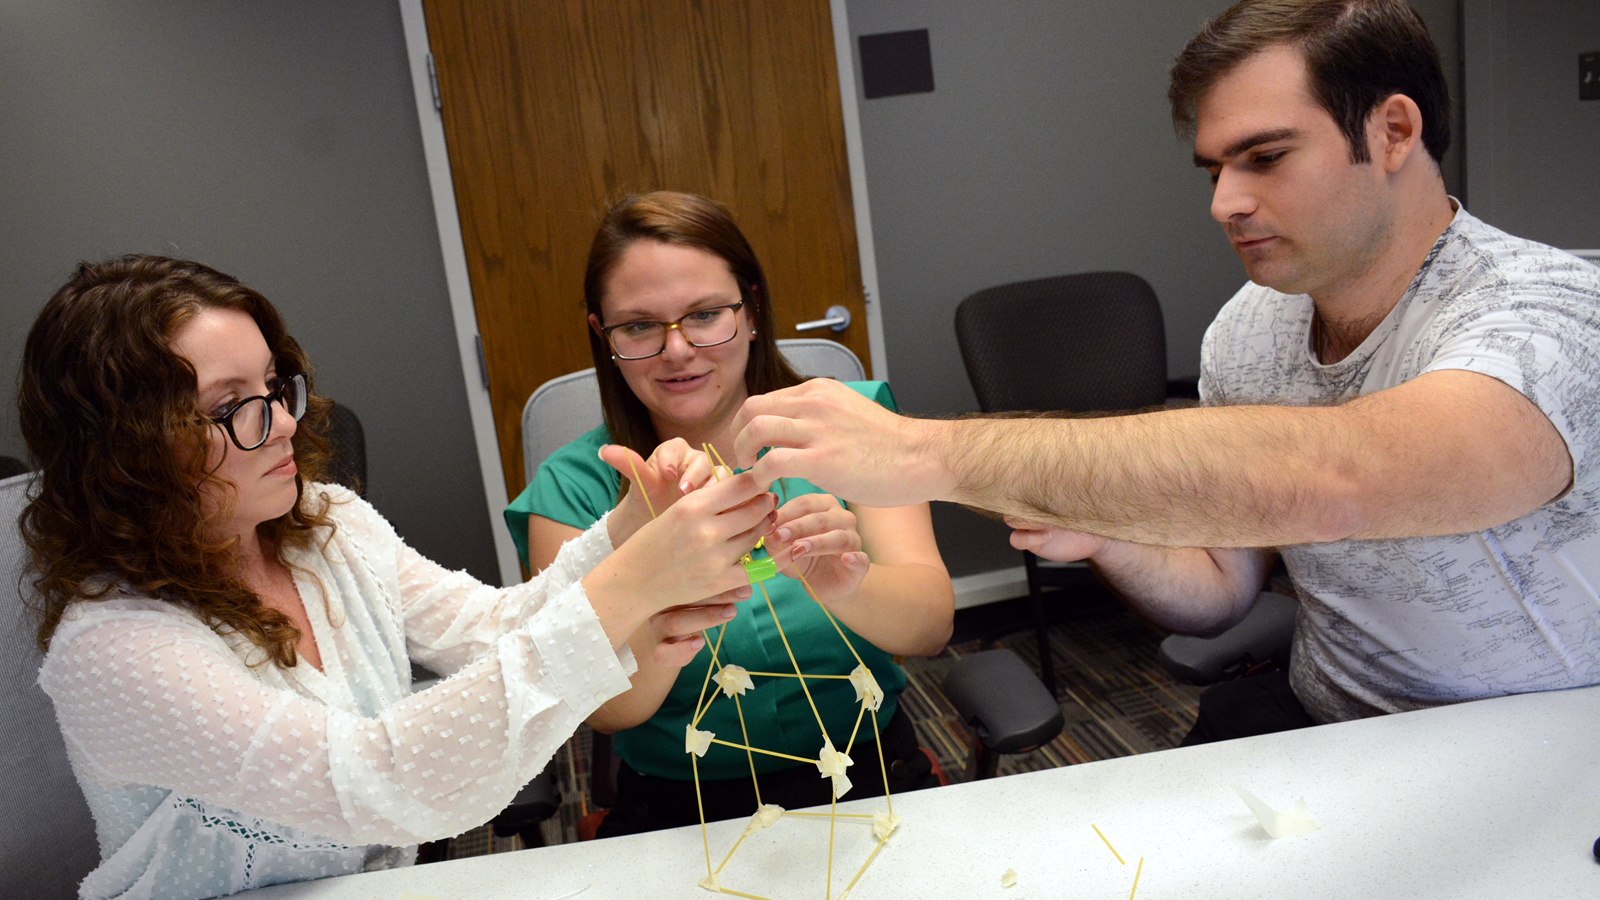 students build structure with marshmallows